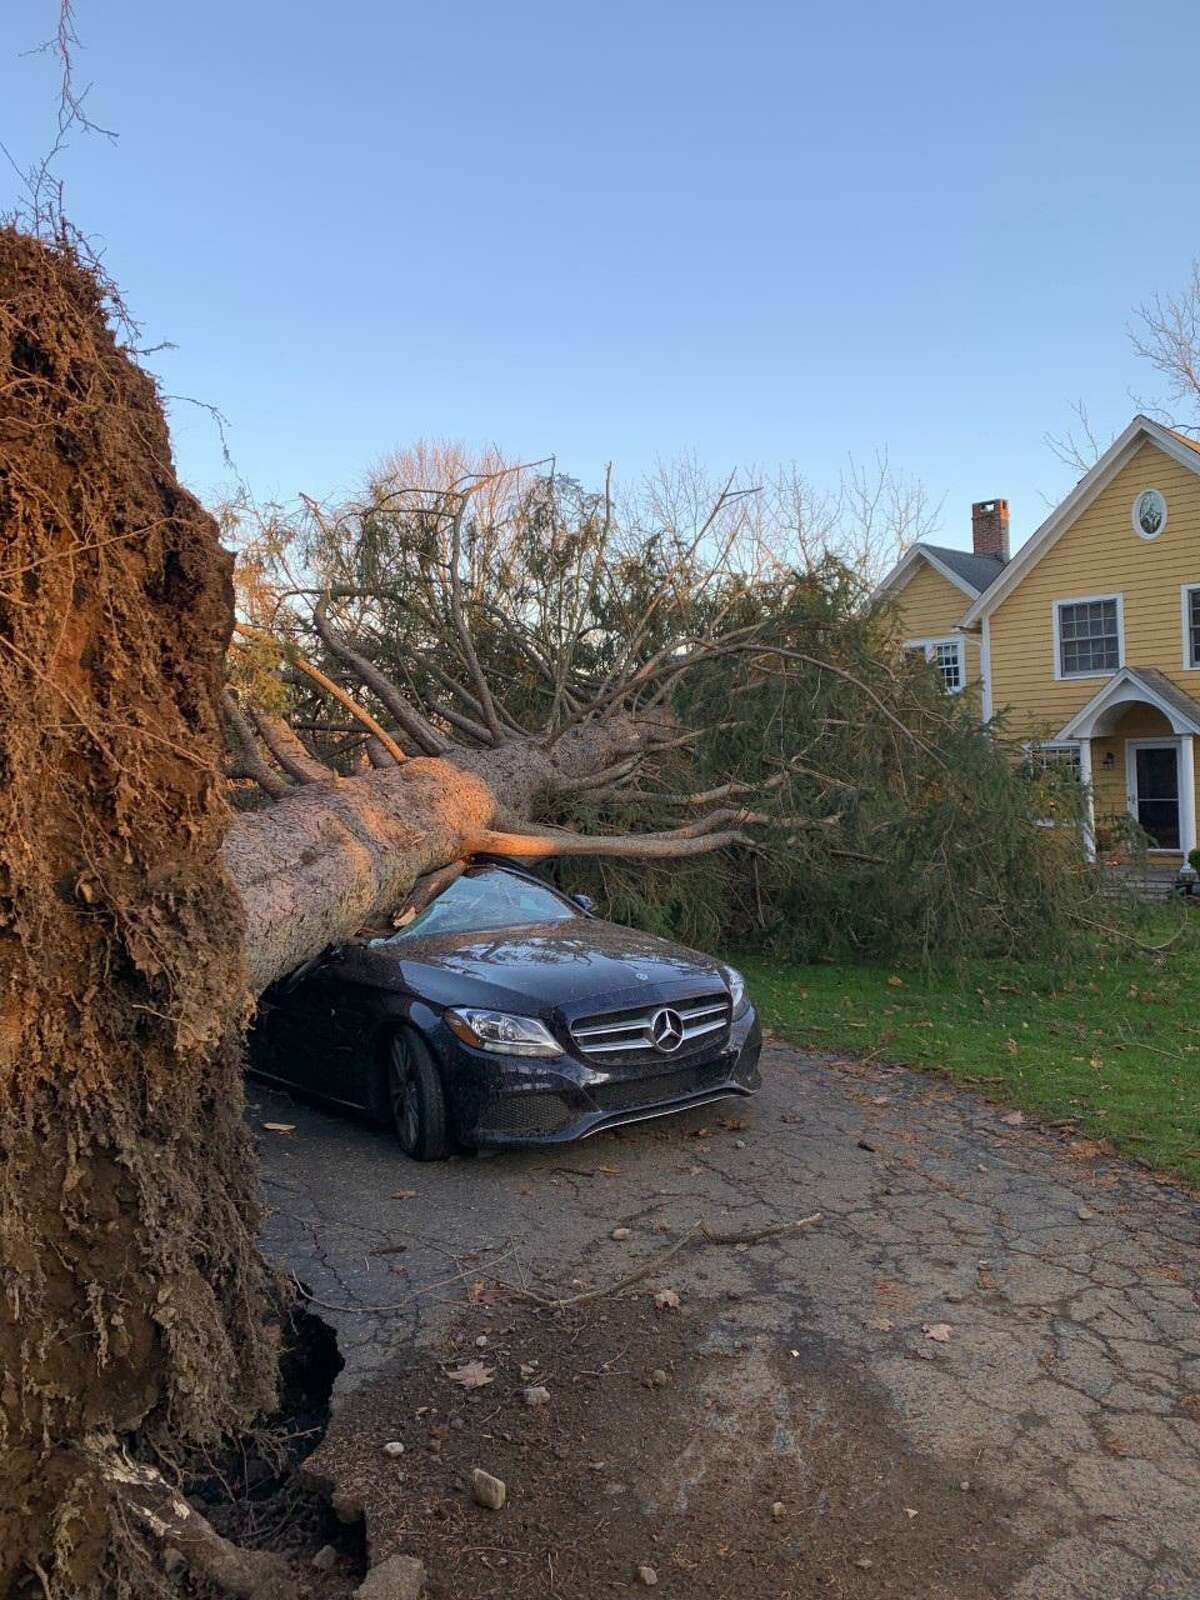 """Wally Simon's and another resident he lives with's house in Ridgefield """"took some bad damage"""" during the storm Sunday night Nov. 15 into Monday morning Nov. 16."""